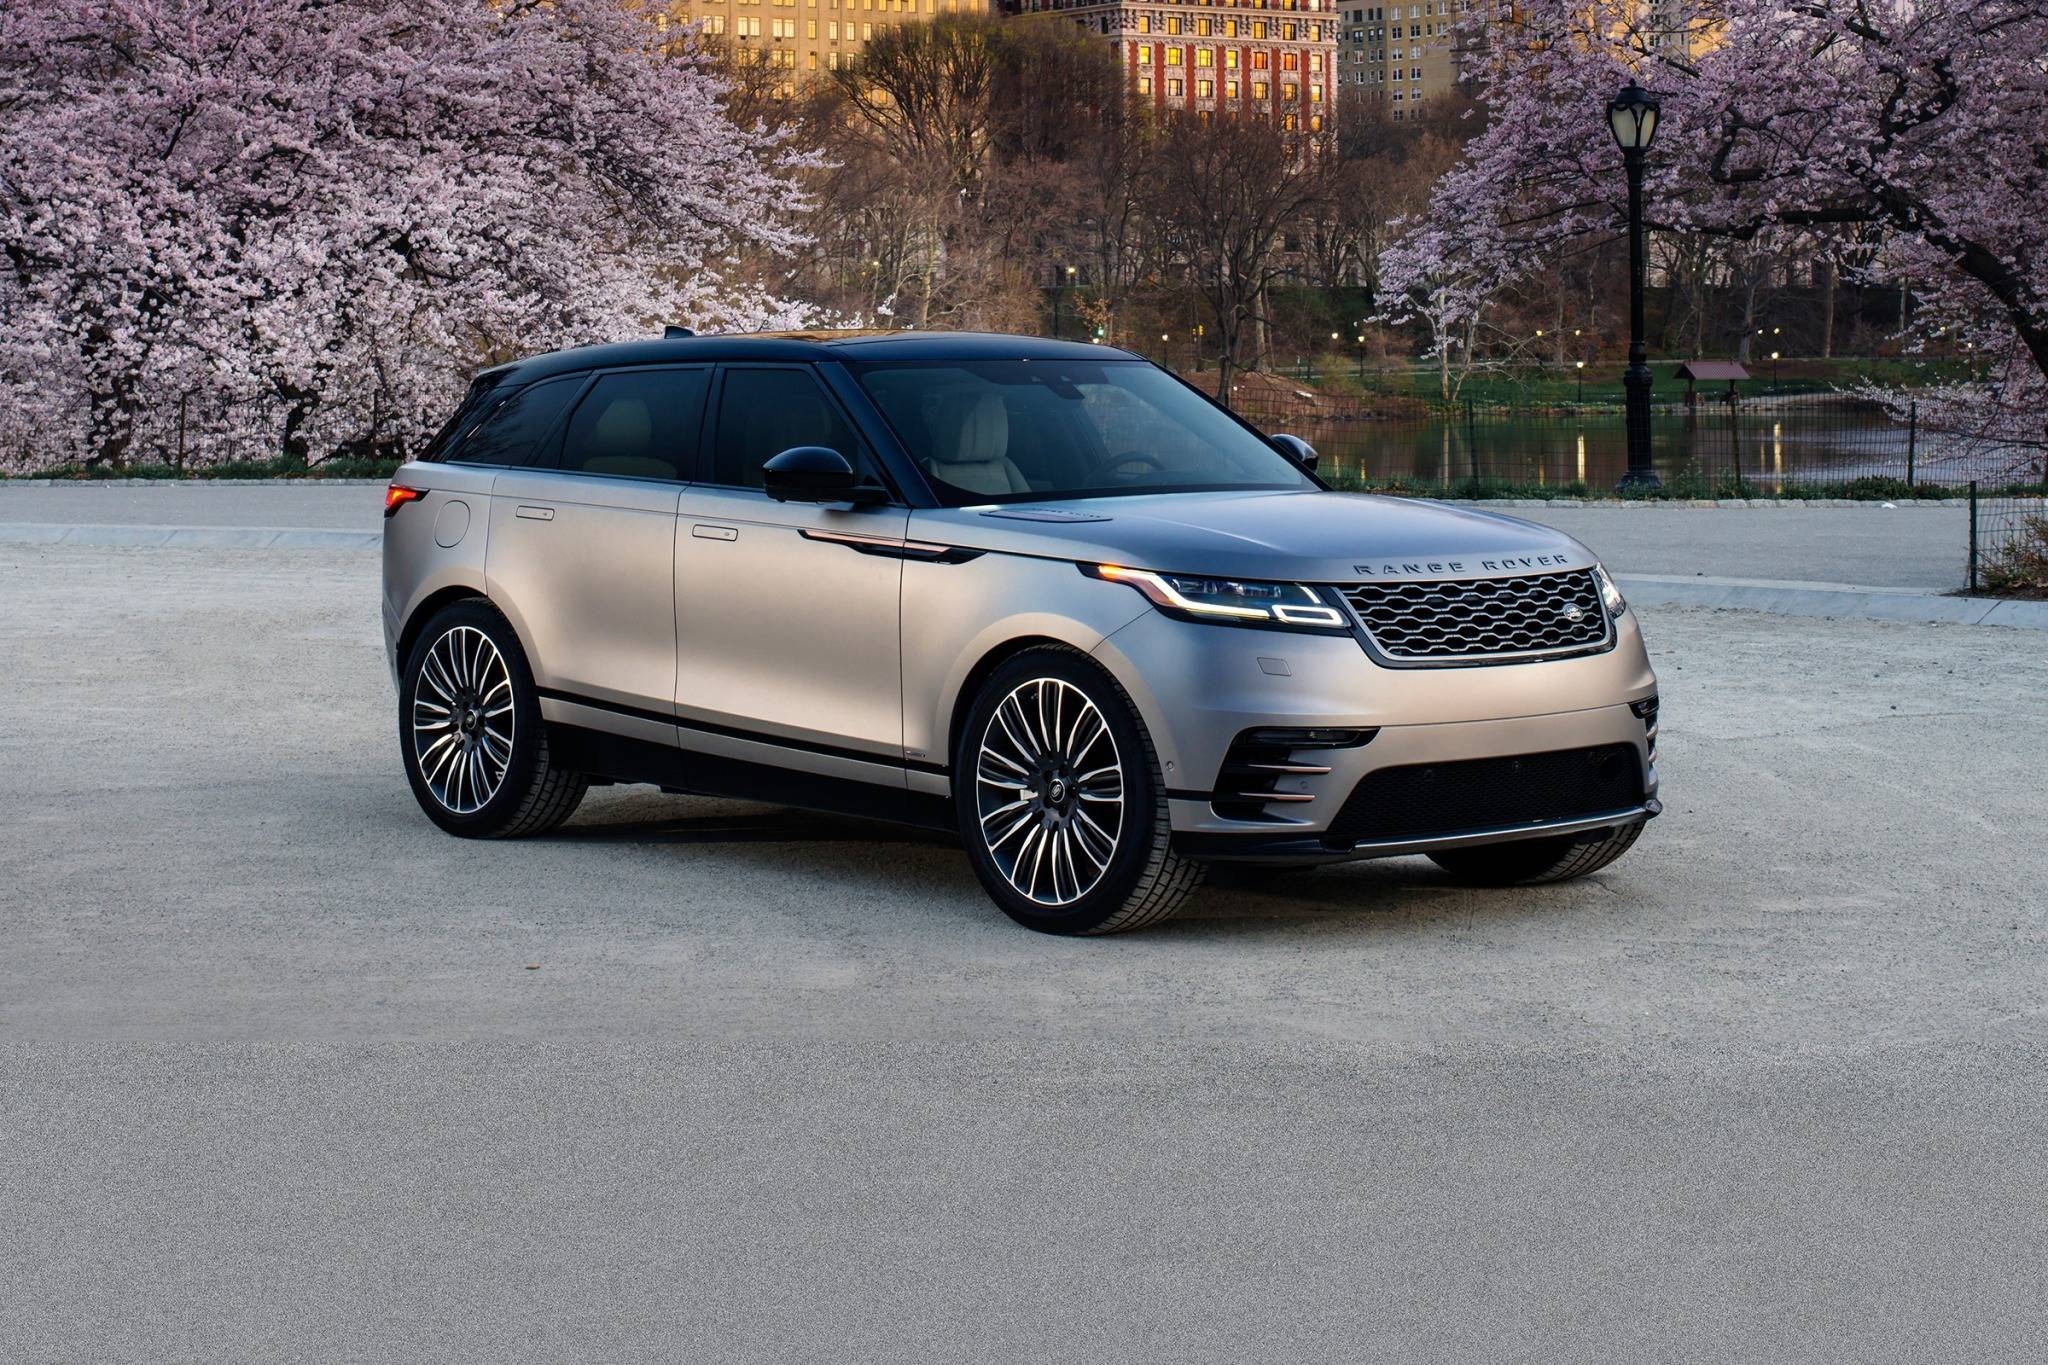 2018 land rover range rover velar 4dr suv first edition fq oem 1 2048